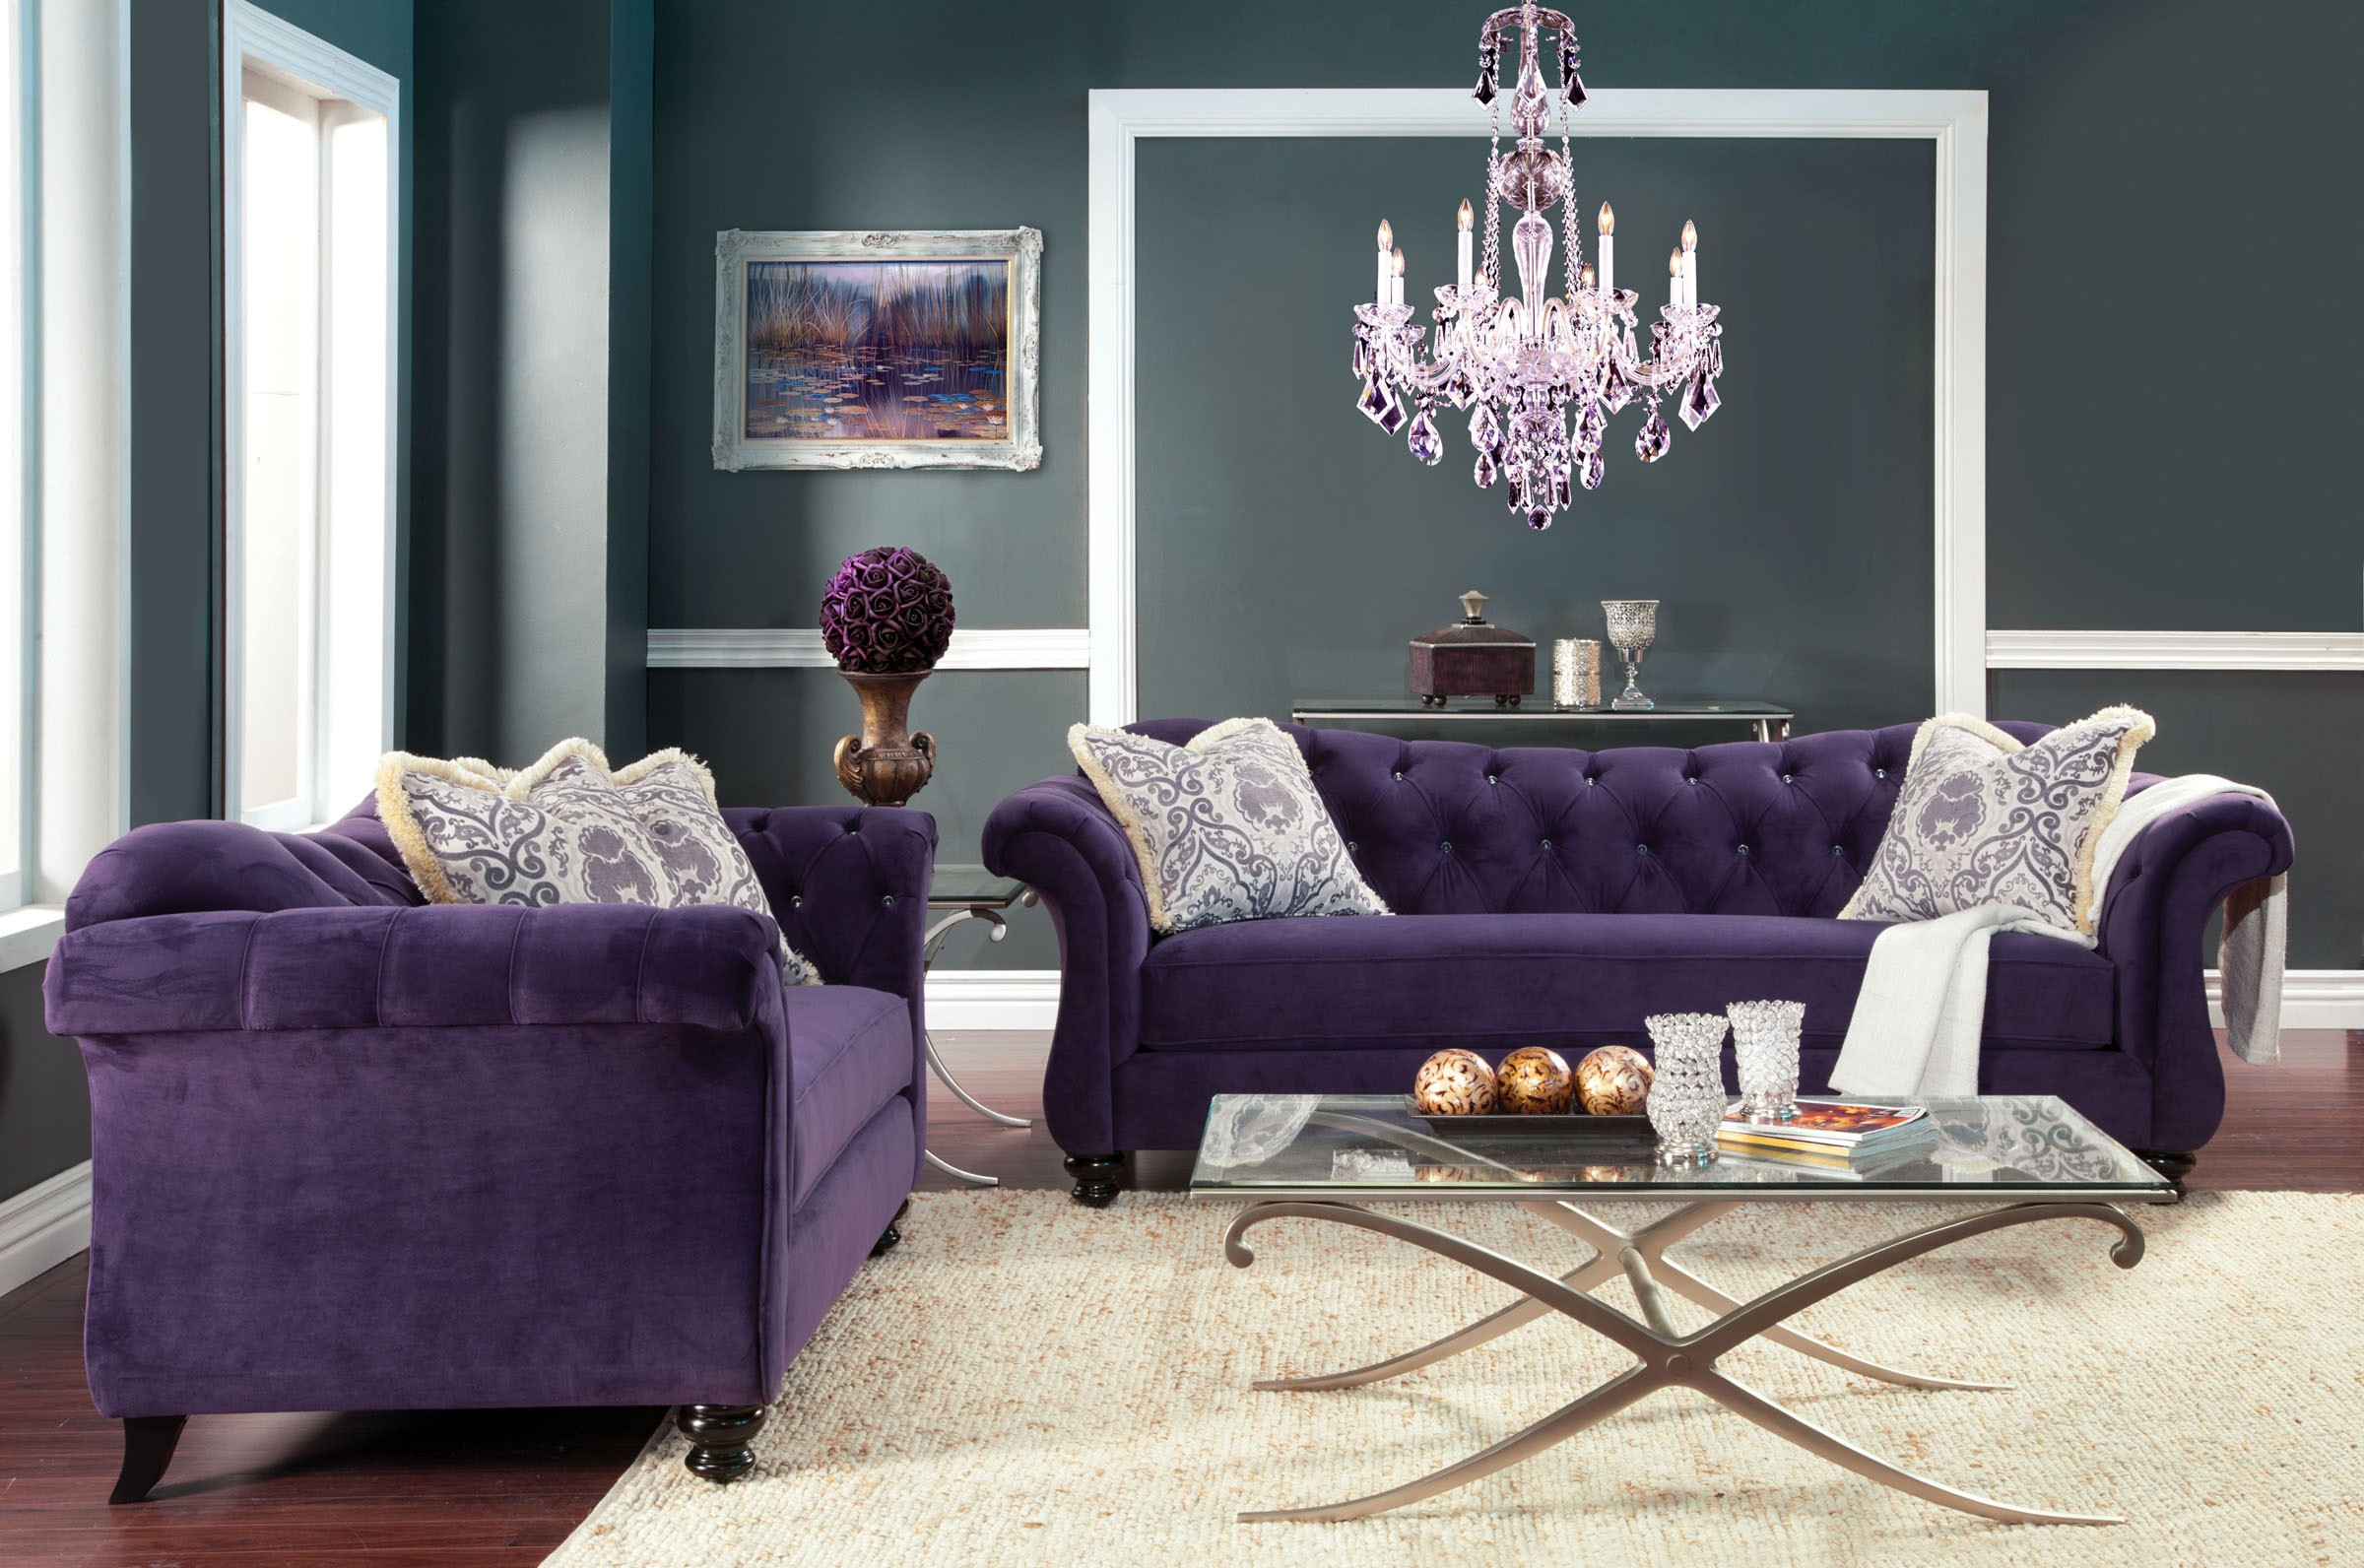 Purple Chesterfield Sofa | Plum Colored Sofa | Purple Sofa